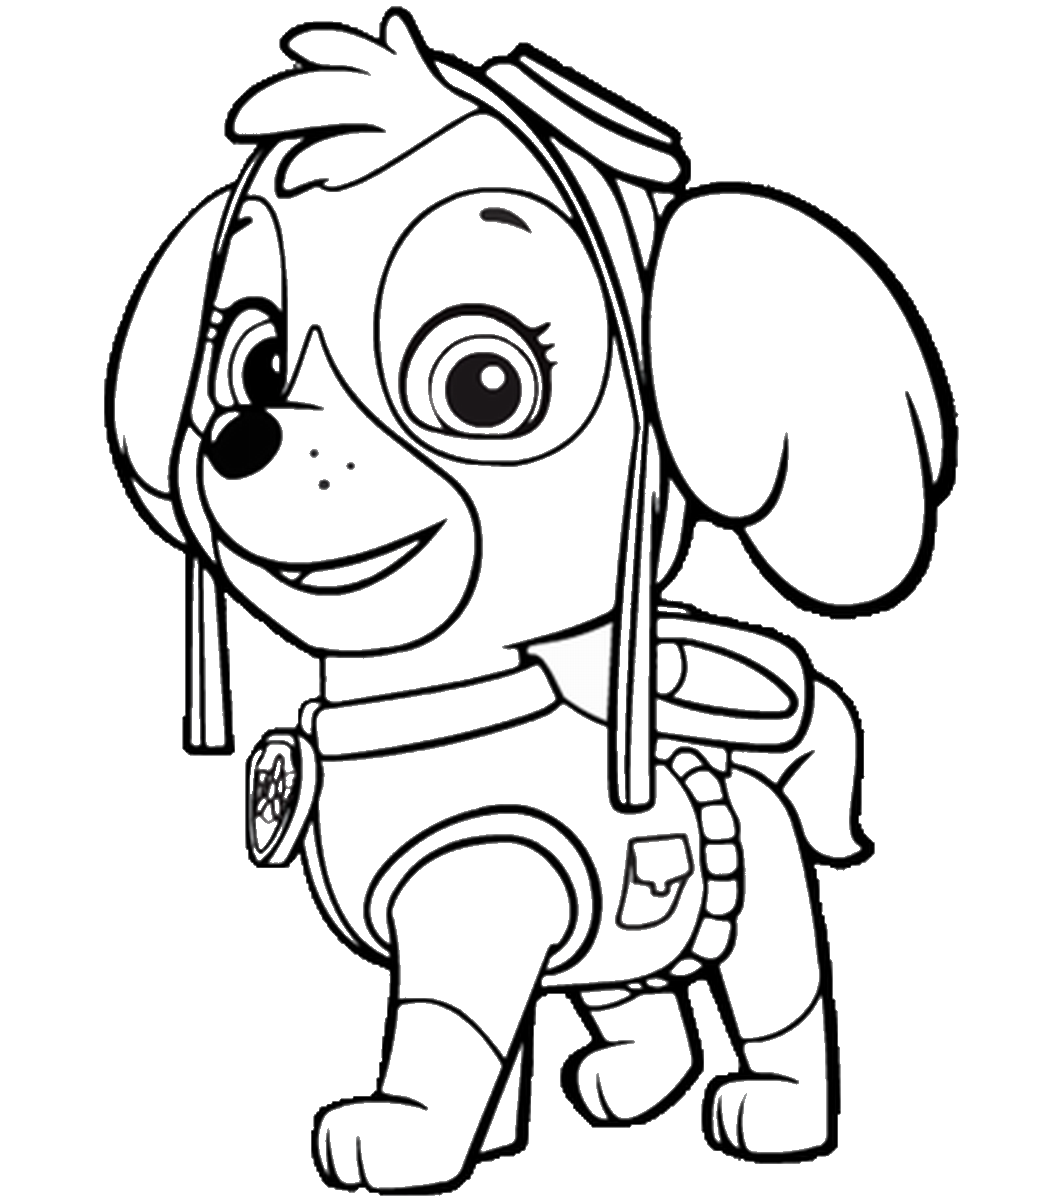 paw patrol coloring outline paw patrol coloring printable sketch coloring page coloring patrol paw outline